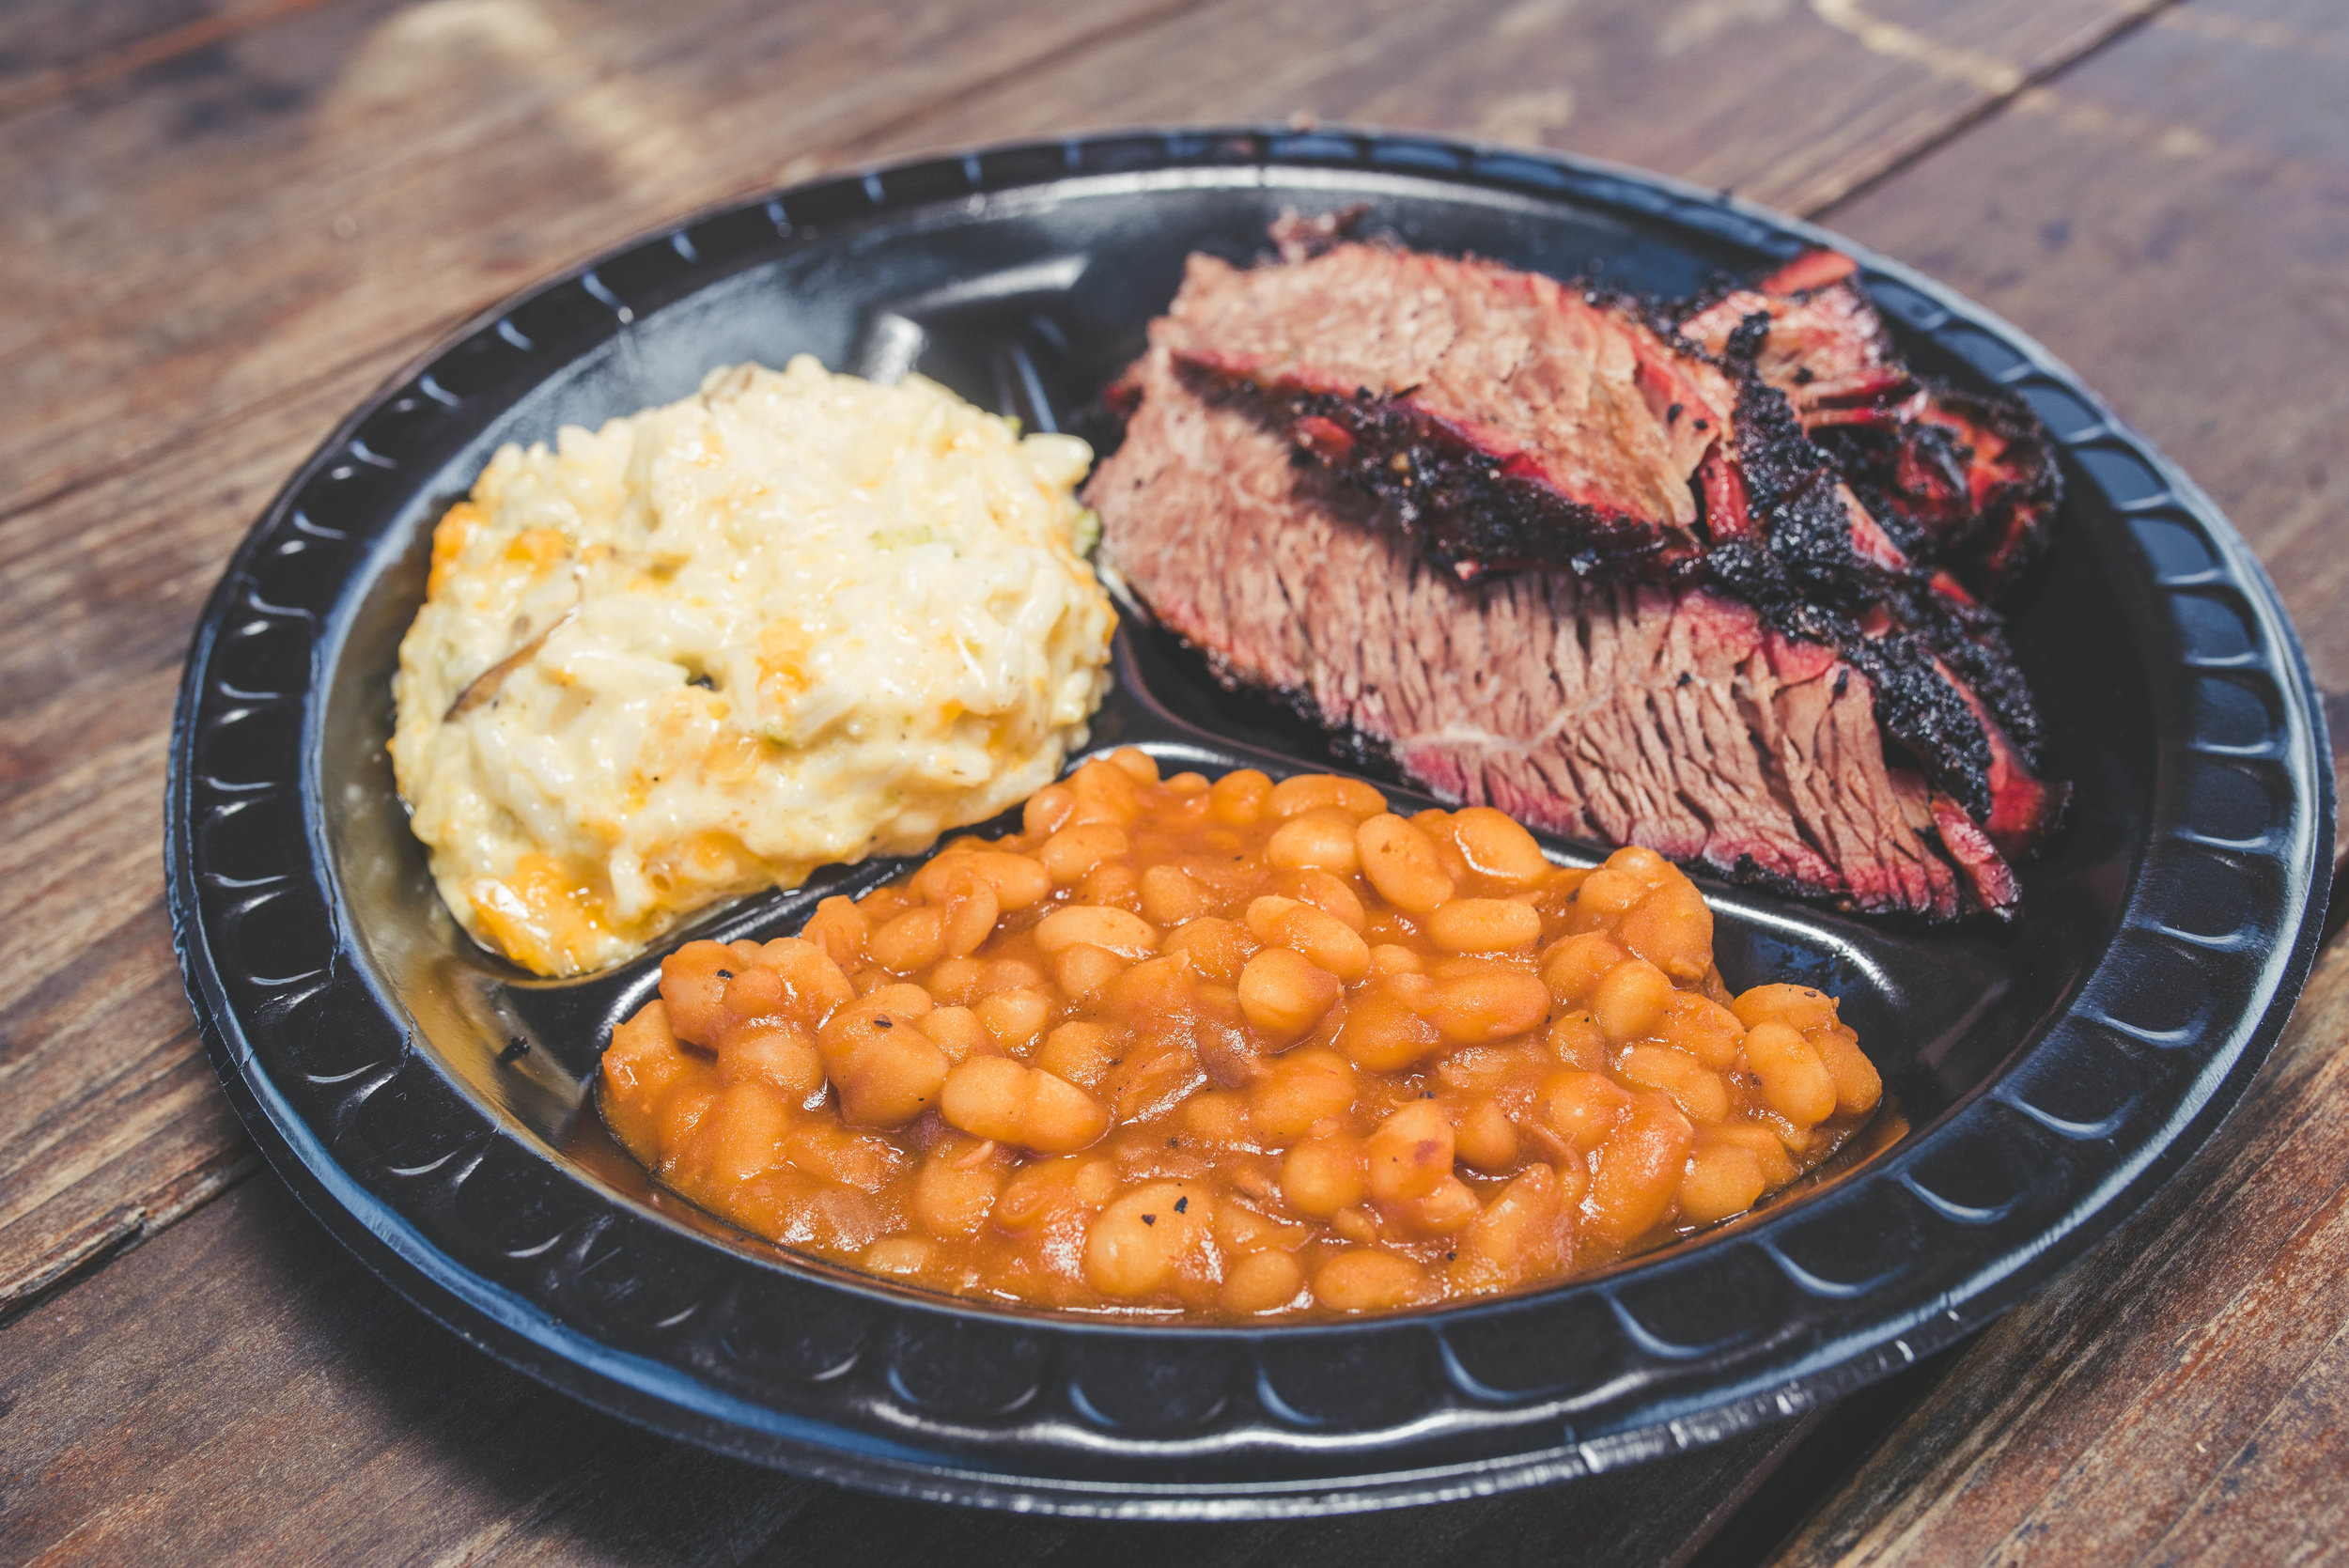 BRISKET WITH A SIDE OF CREAMED CORN & BAKED BEANS